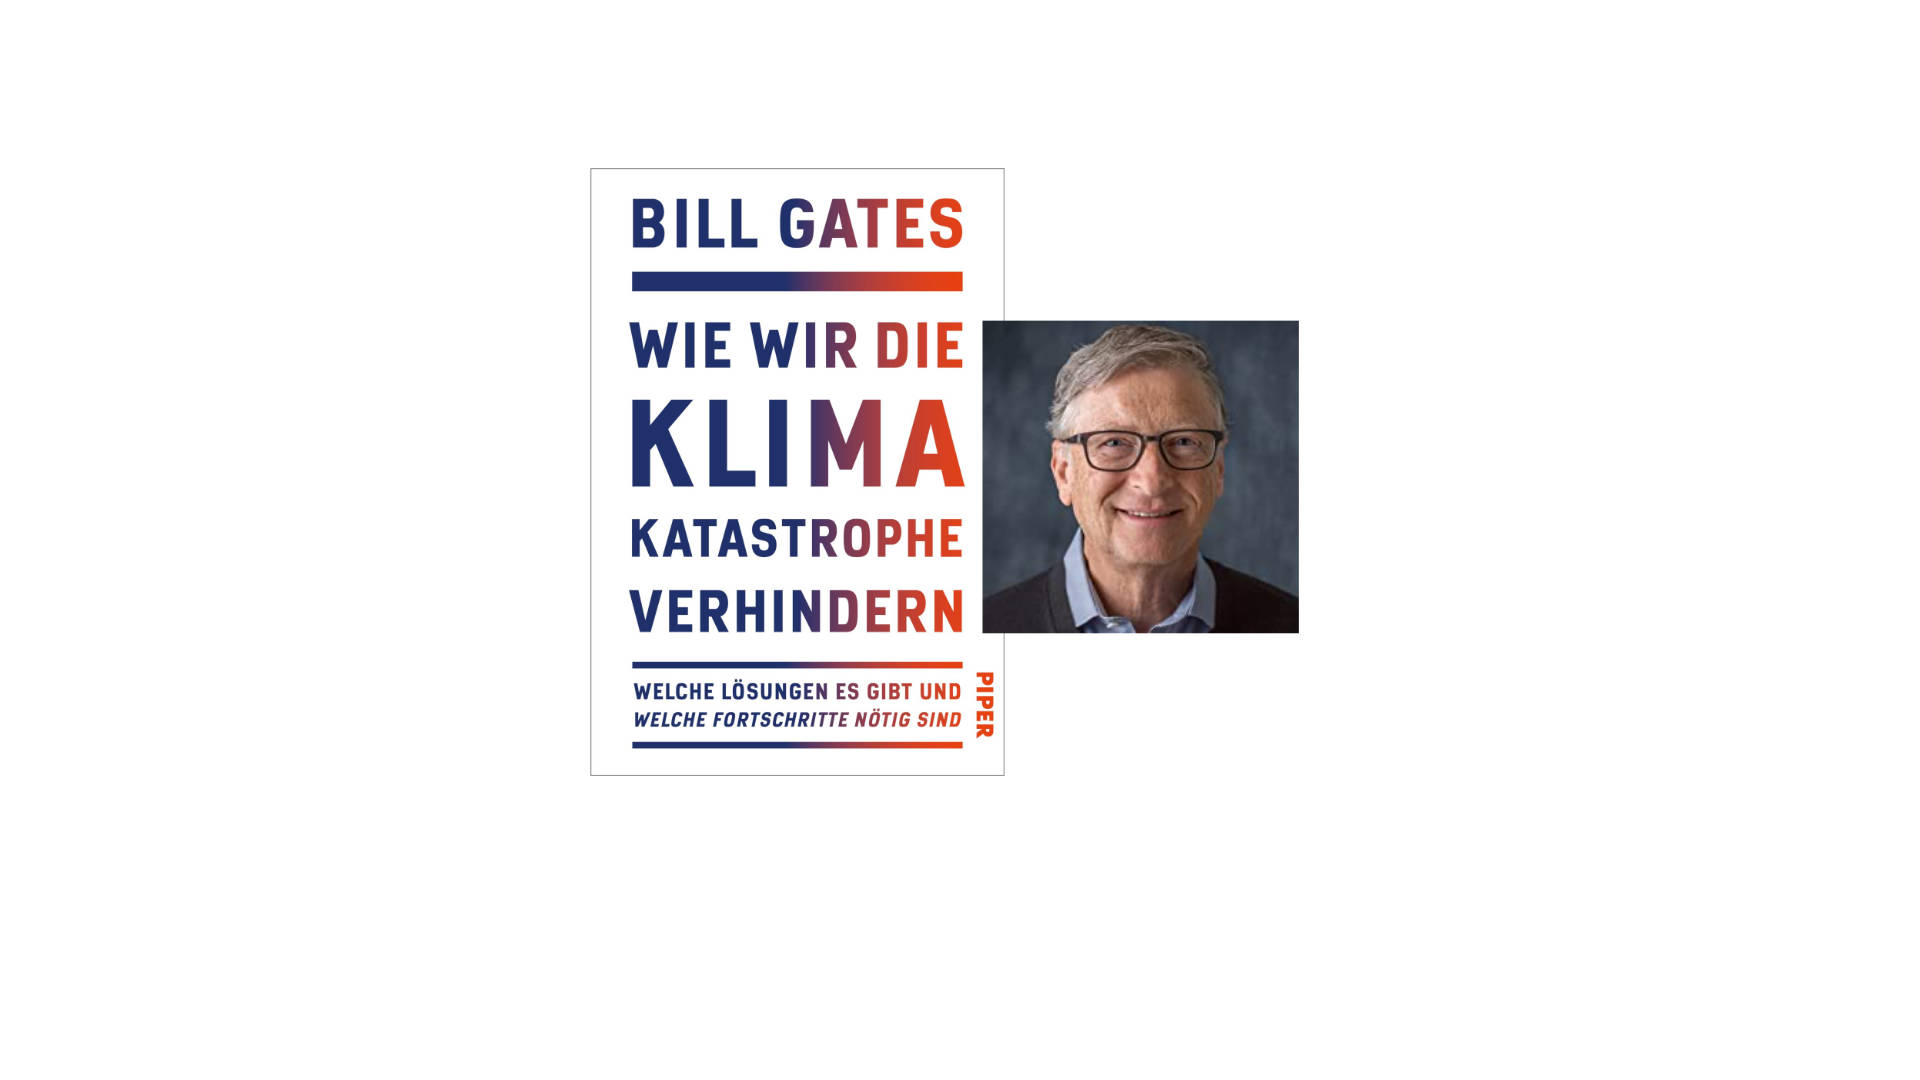 Bill Gates Klimawandel Innovation